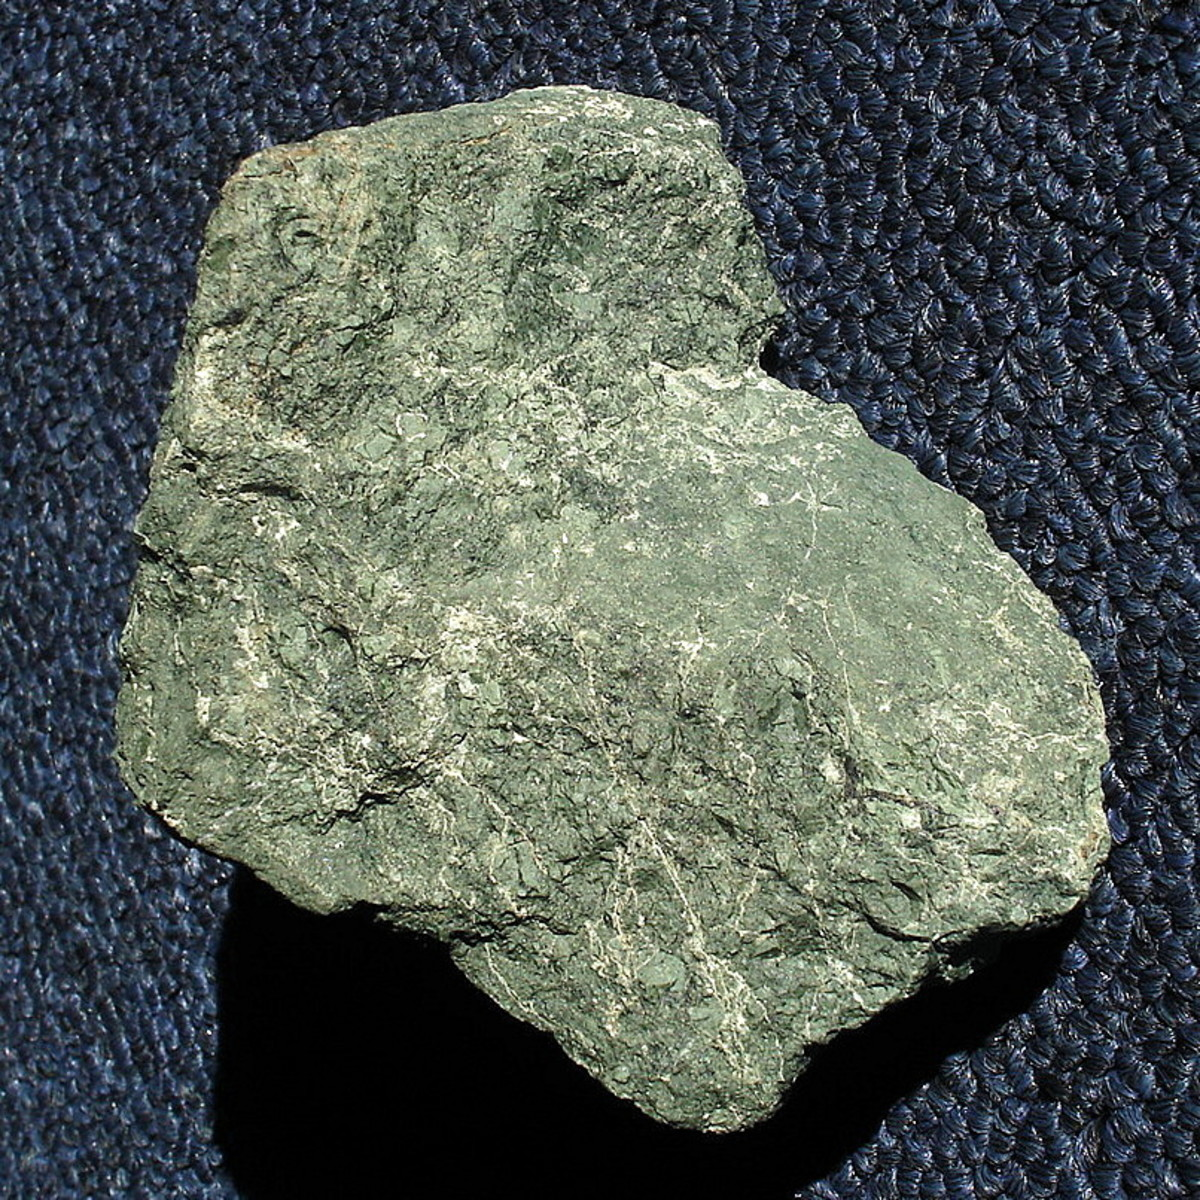 A piece of raw unpolished serpentine.